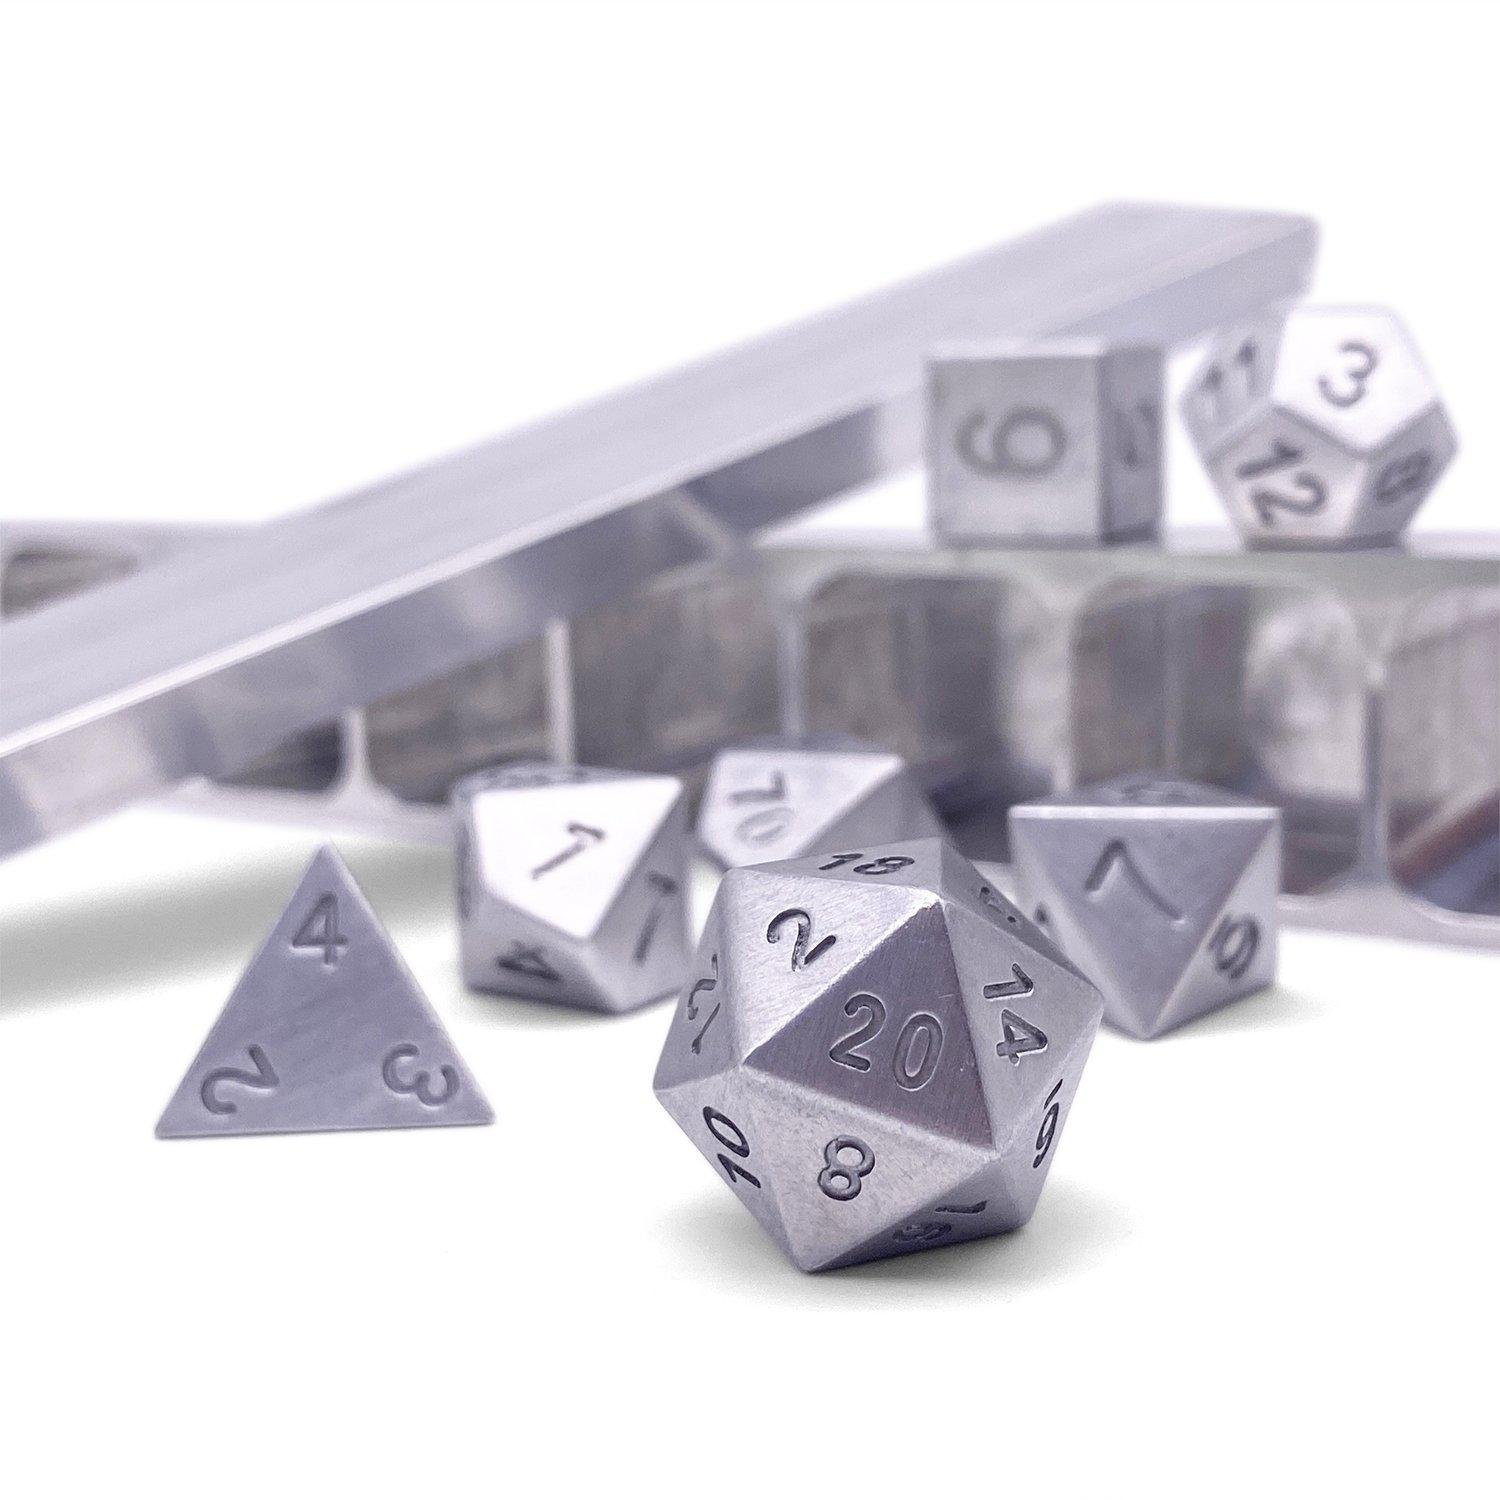 Pure - Precision CNC Aluminum Dice Set with Dice Vault